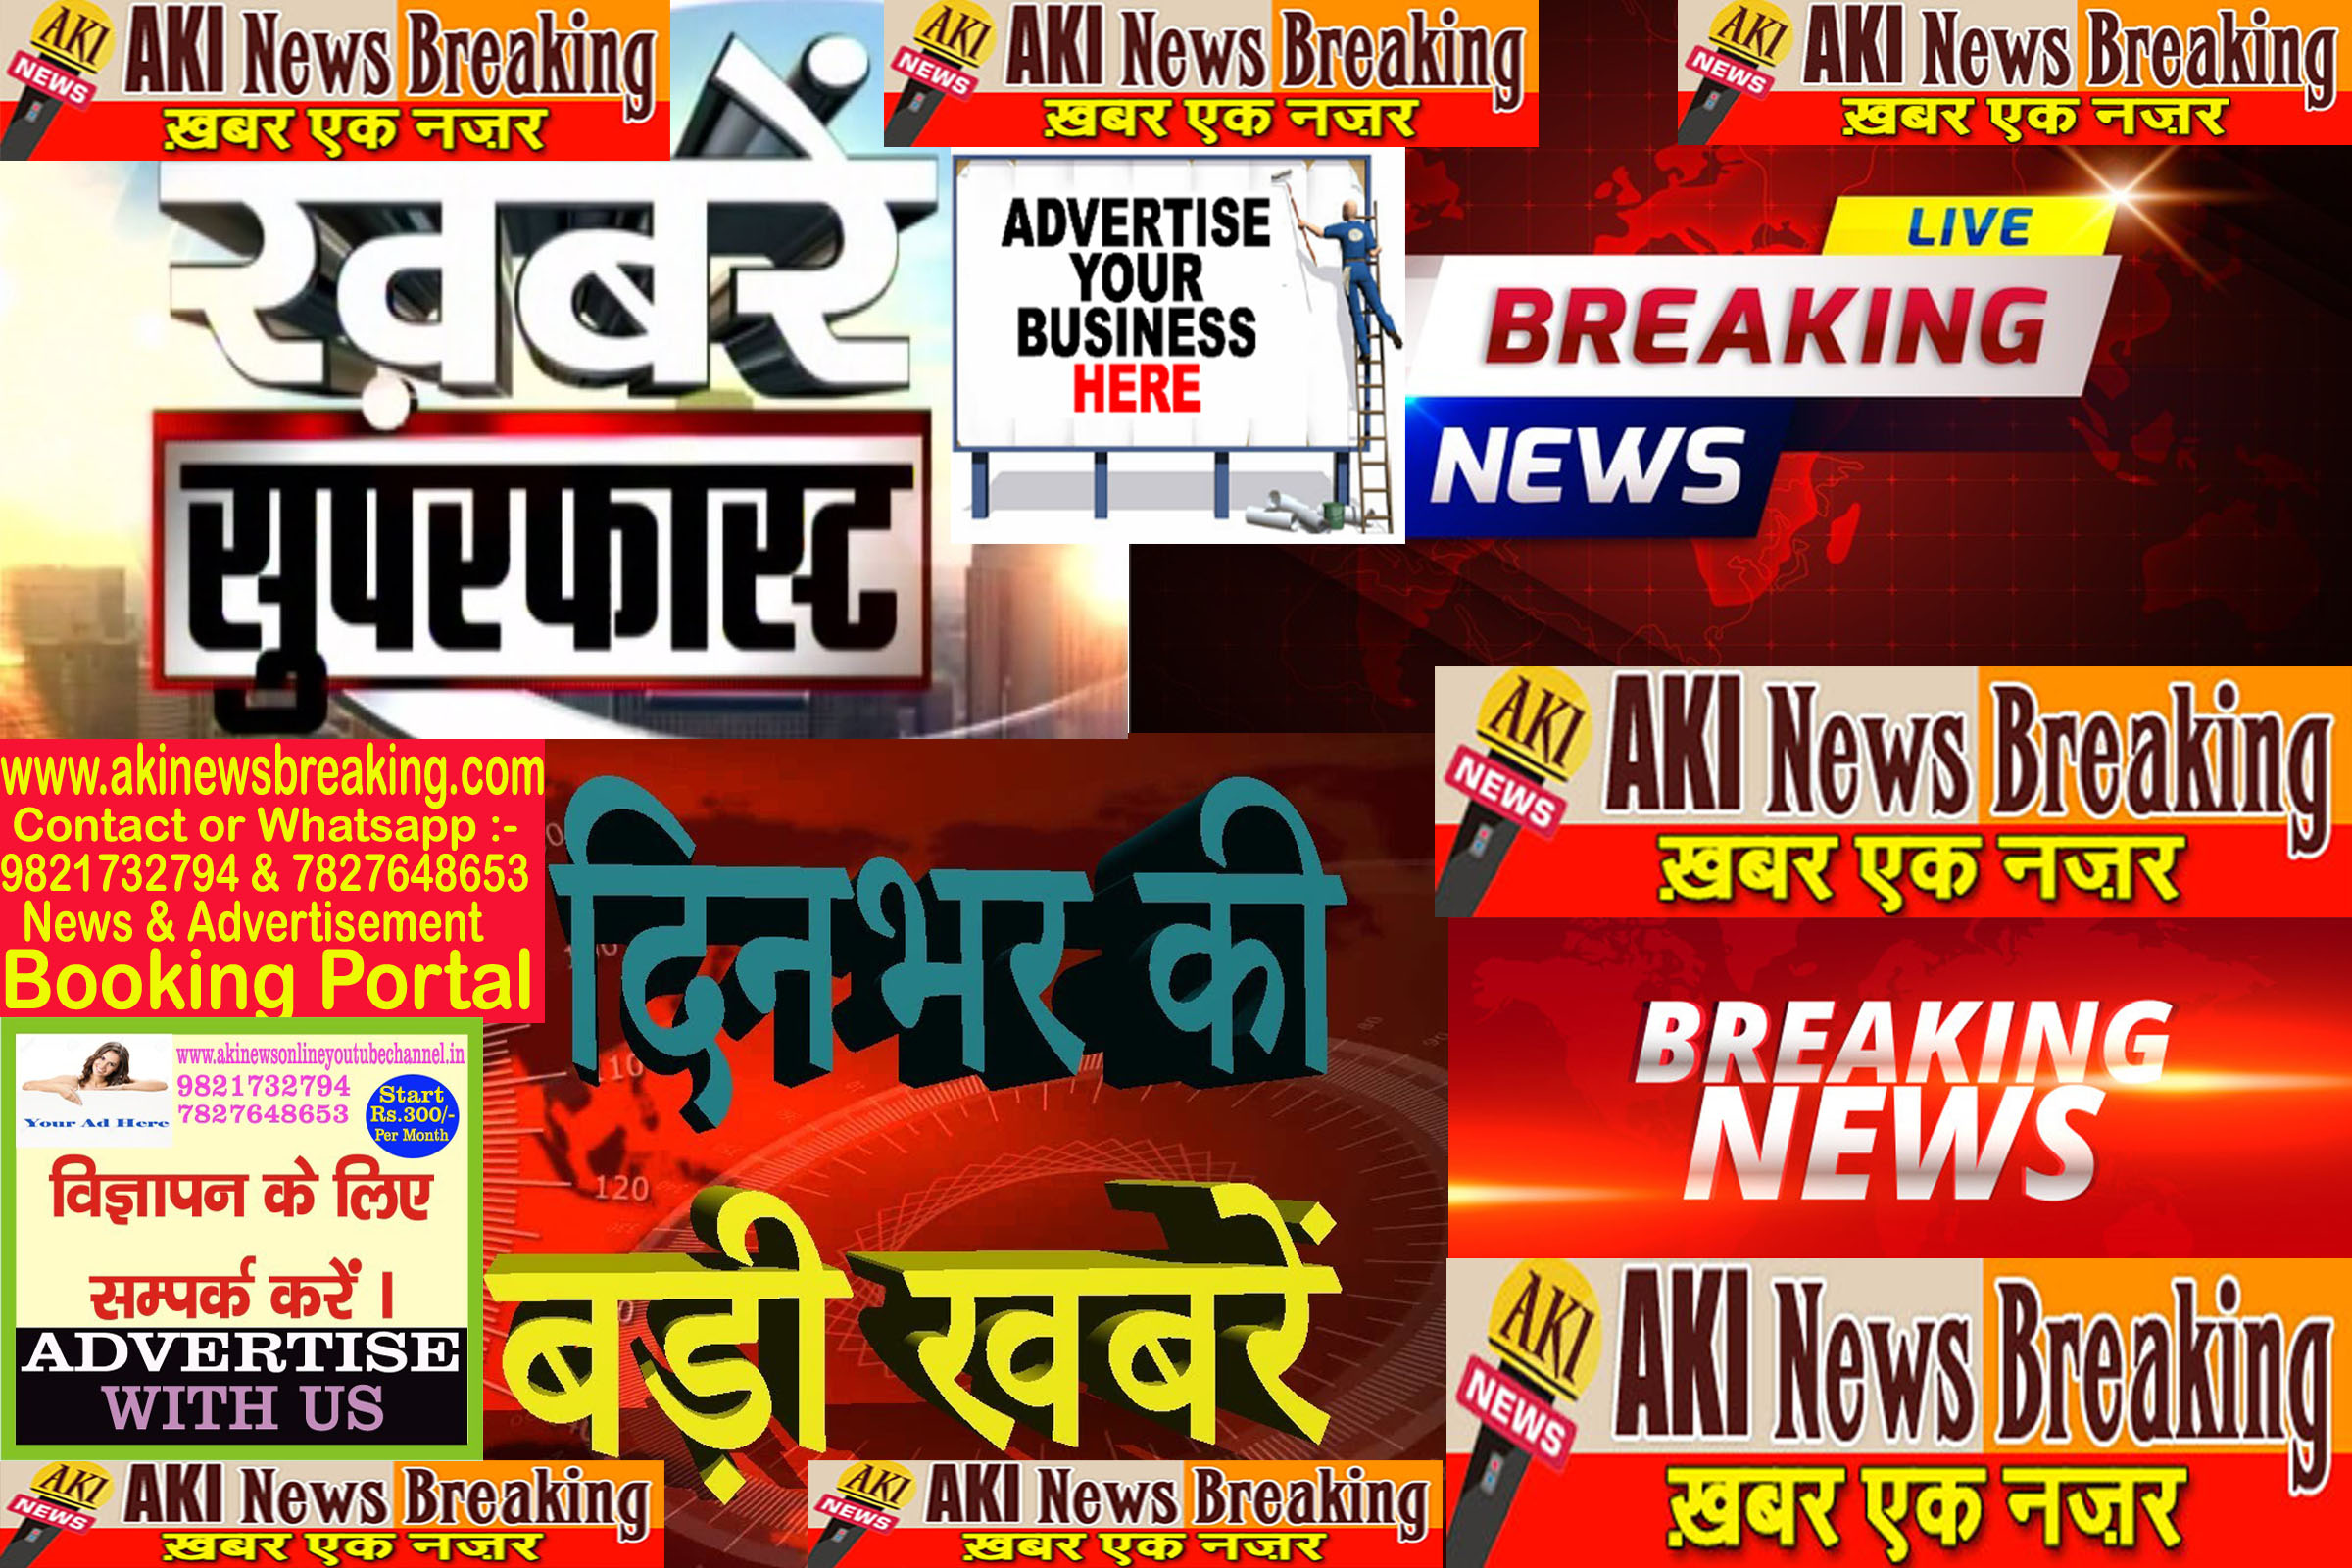 Superfast Breaking News Video Youtube News Link video :- (A.K.I. News Breaking) (www.akinewsbreaking.com) Contact or Whatsapp :- 9821732794 & 7827648653  (News & Advertisement Booking Portal)